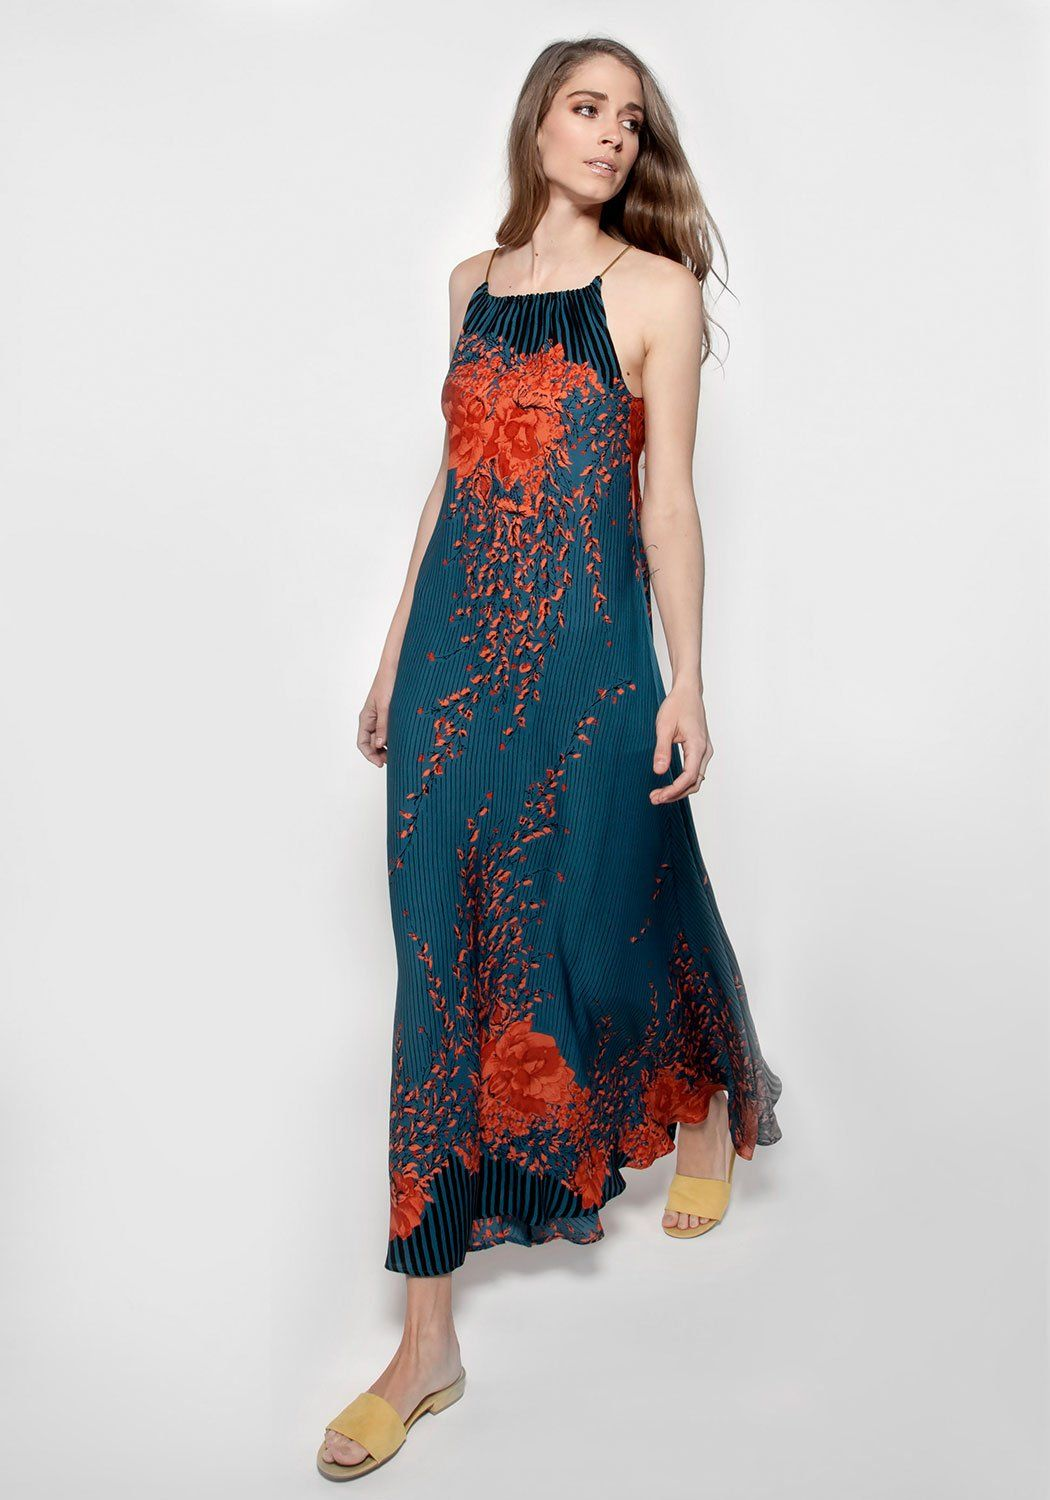 92e39cabfad ... 4 2 18      Sansa is our go-to summer dress. We wear it with sandals to  the beach